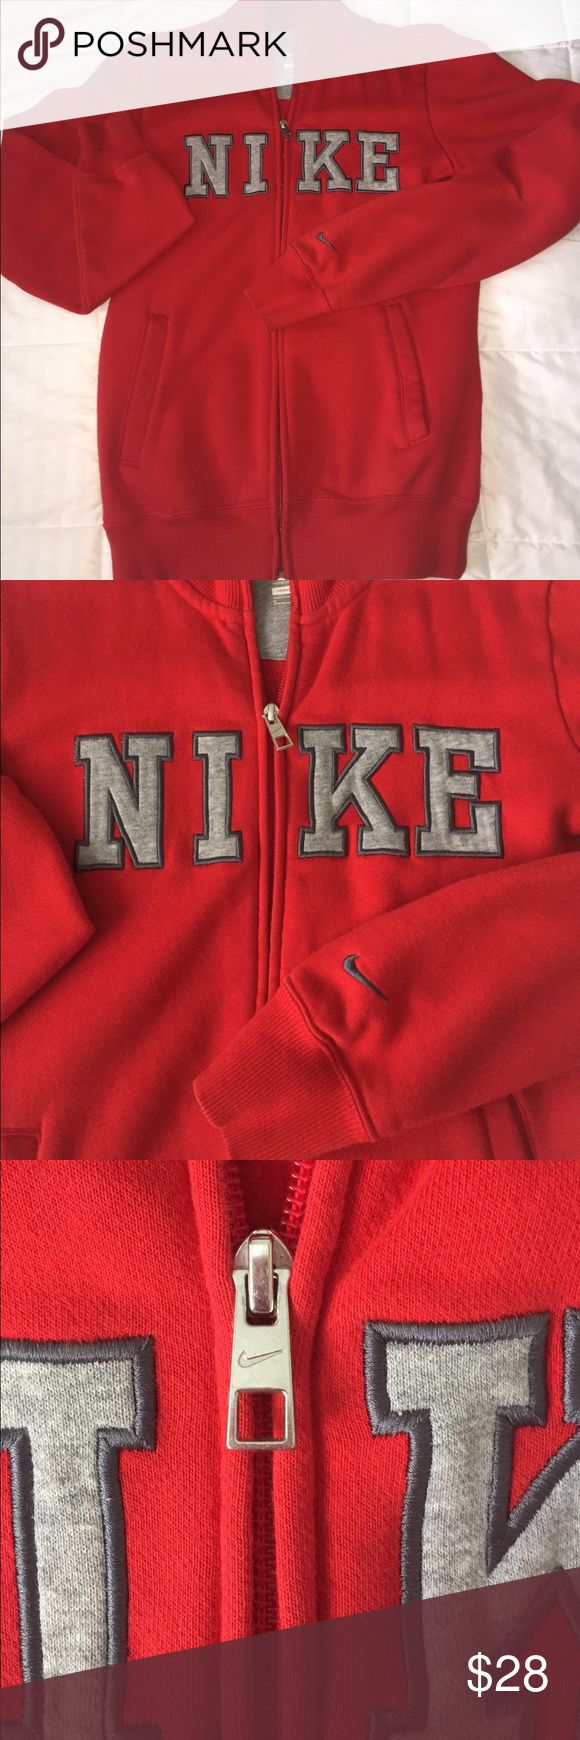 Red NIKE jacket❤ Beautiful red NIKE jacket. One of my ALL time favorites because it's soft on the inside & out! EUC 🌺 Nike Jackets & Coats